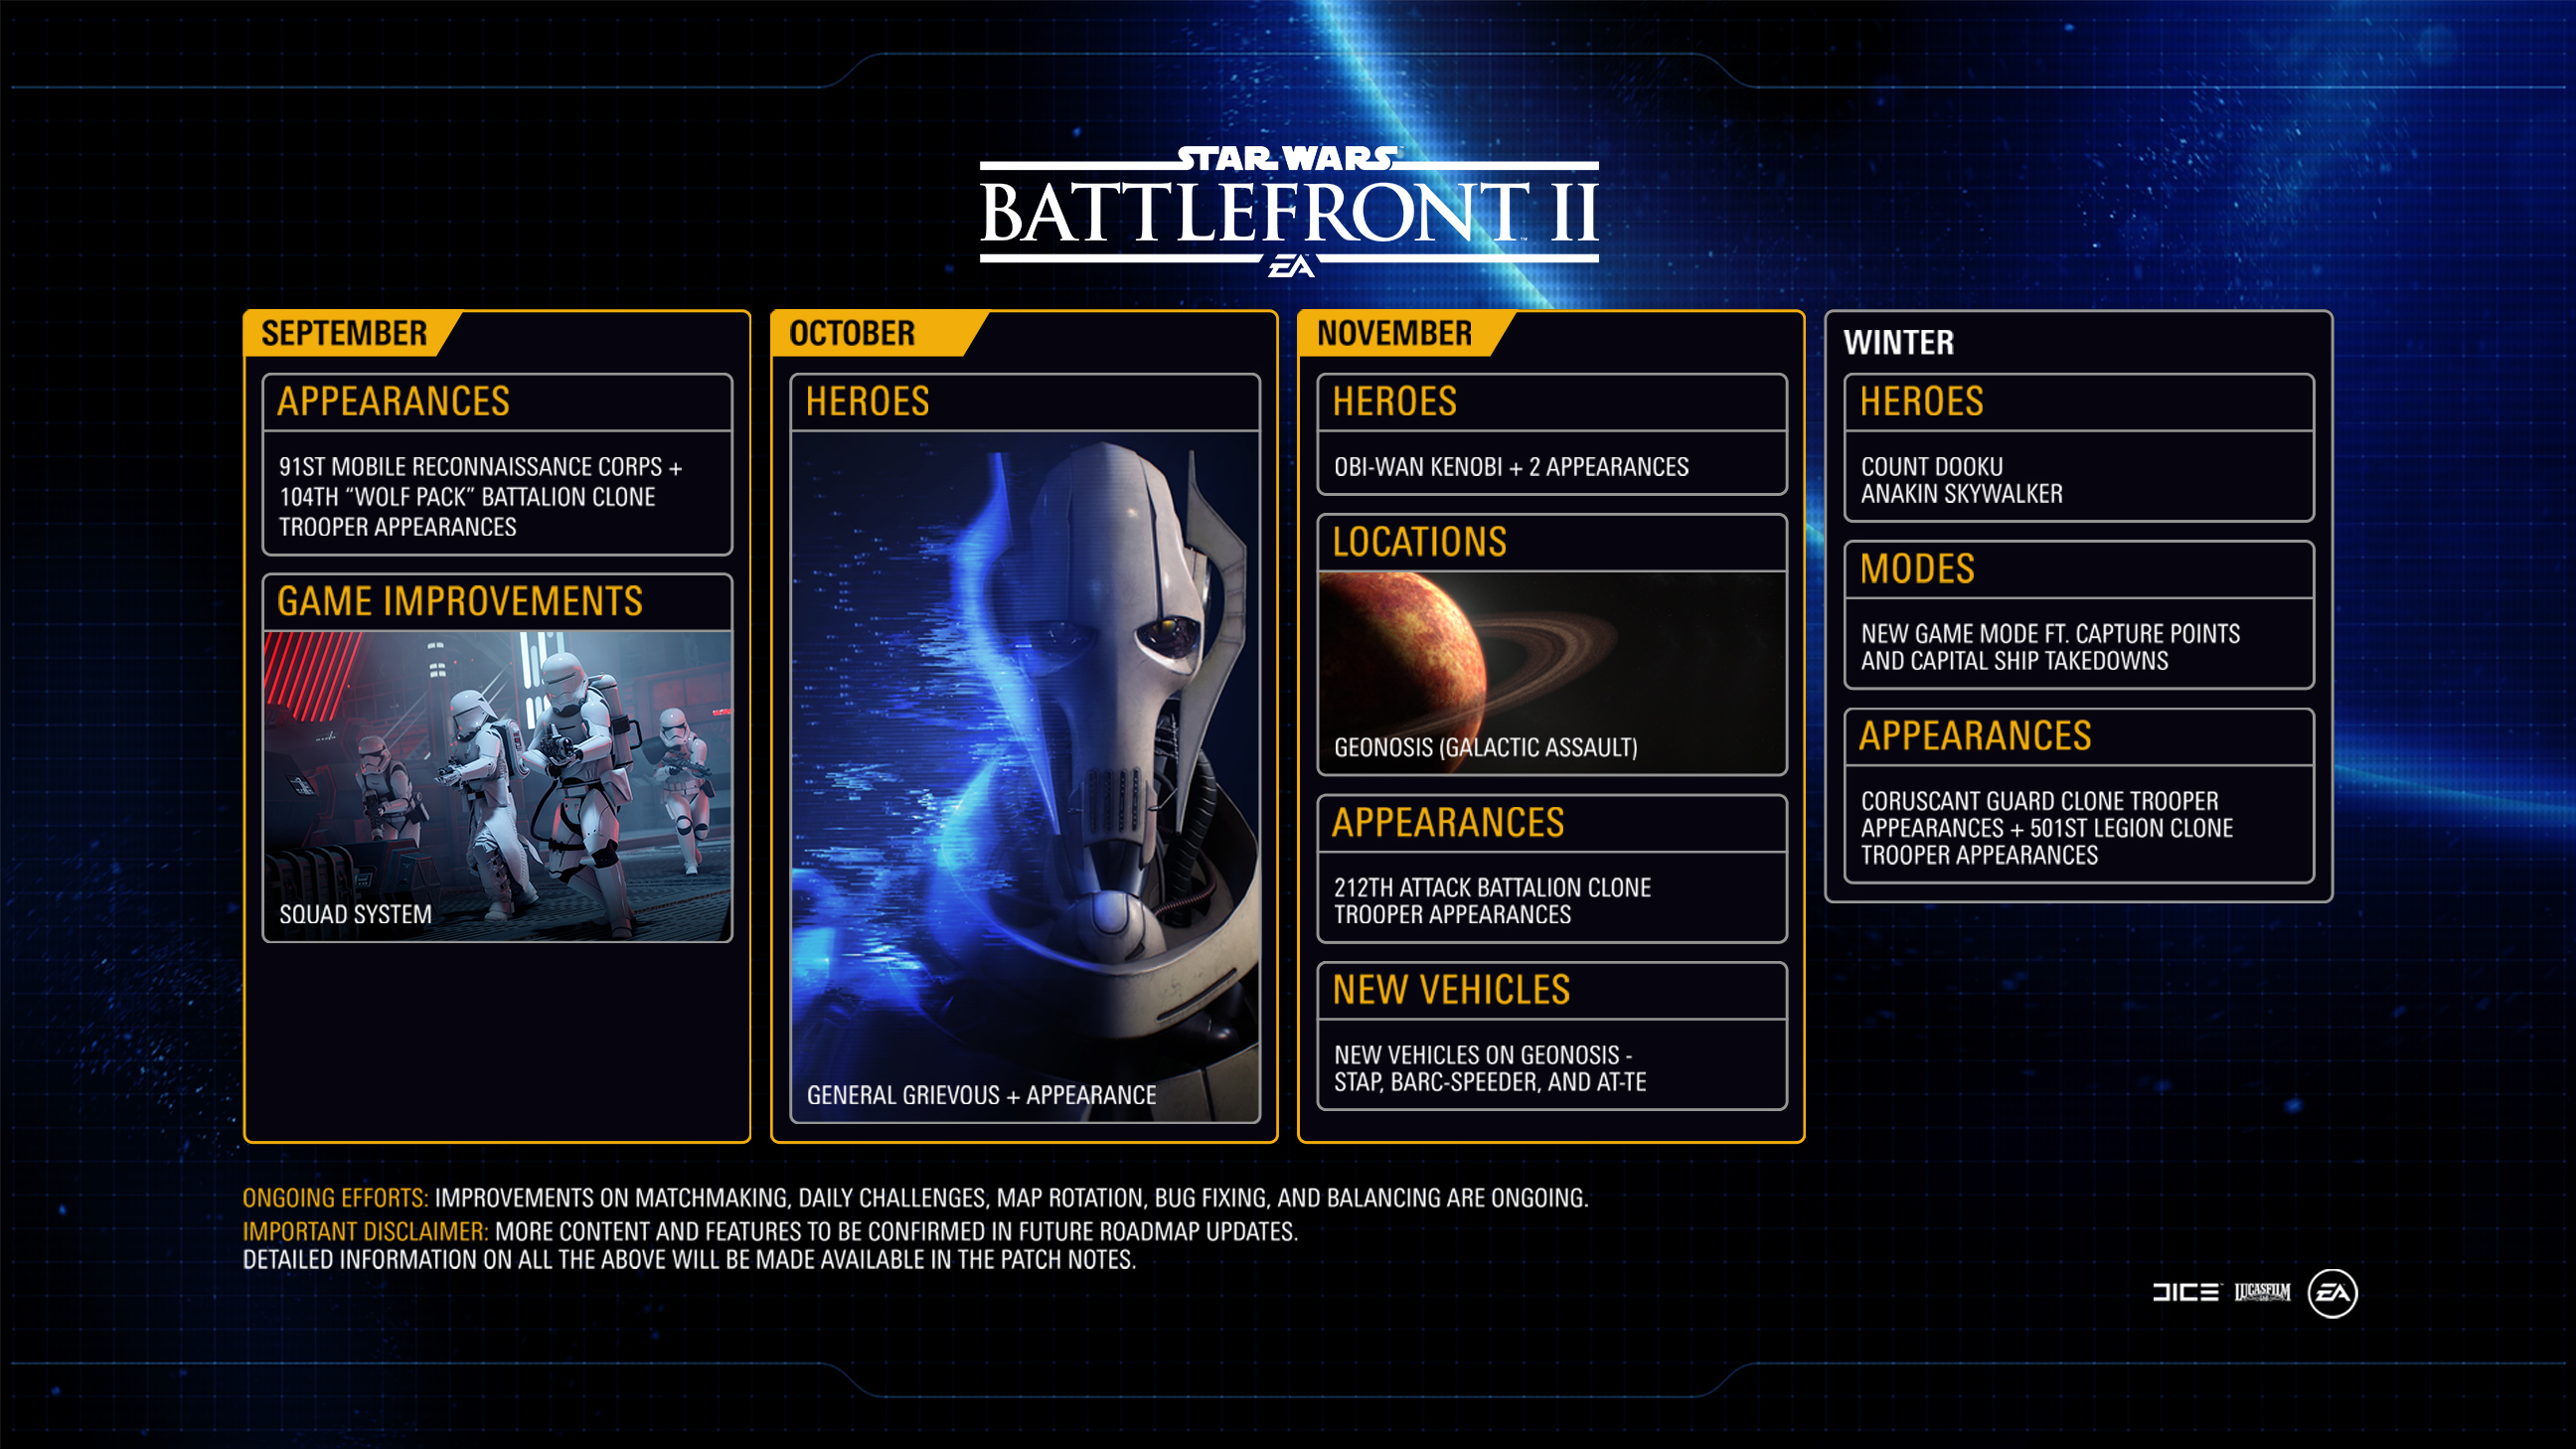 swbf2-seasons-calendar-fall-spring.jpg